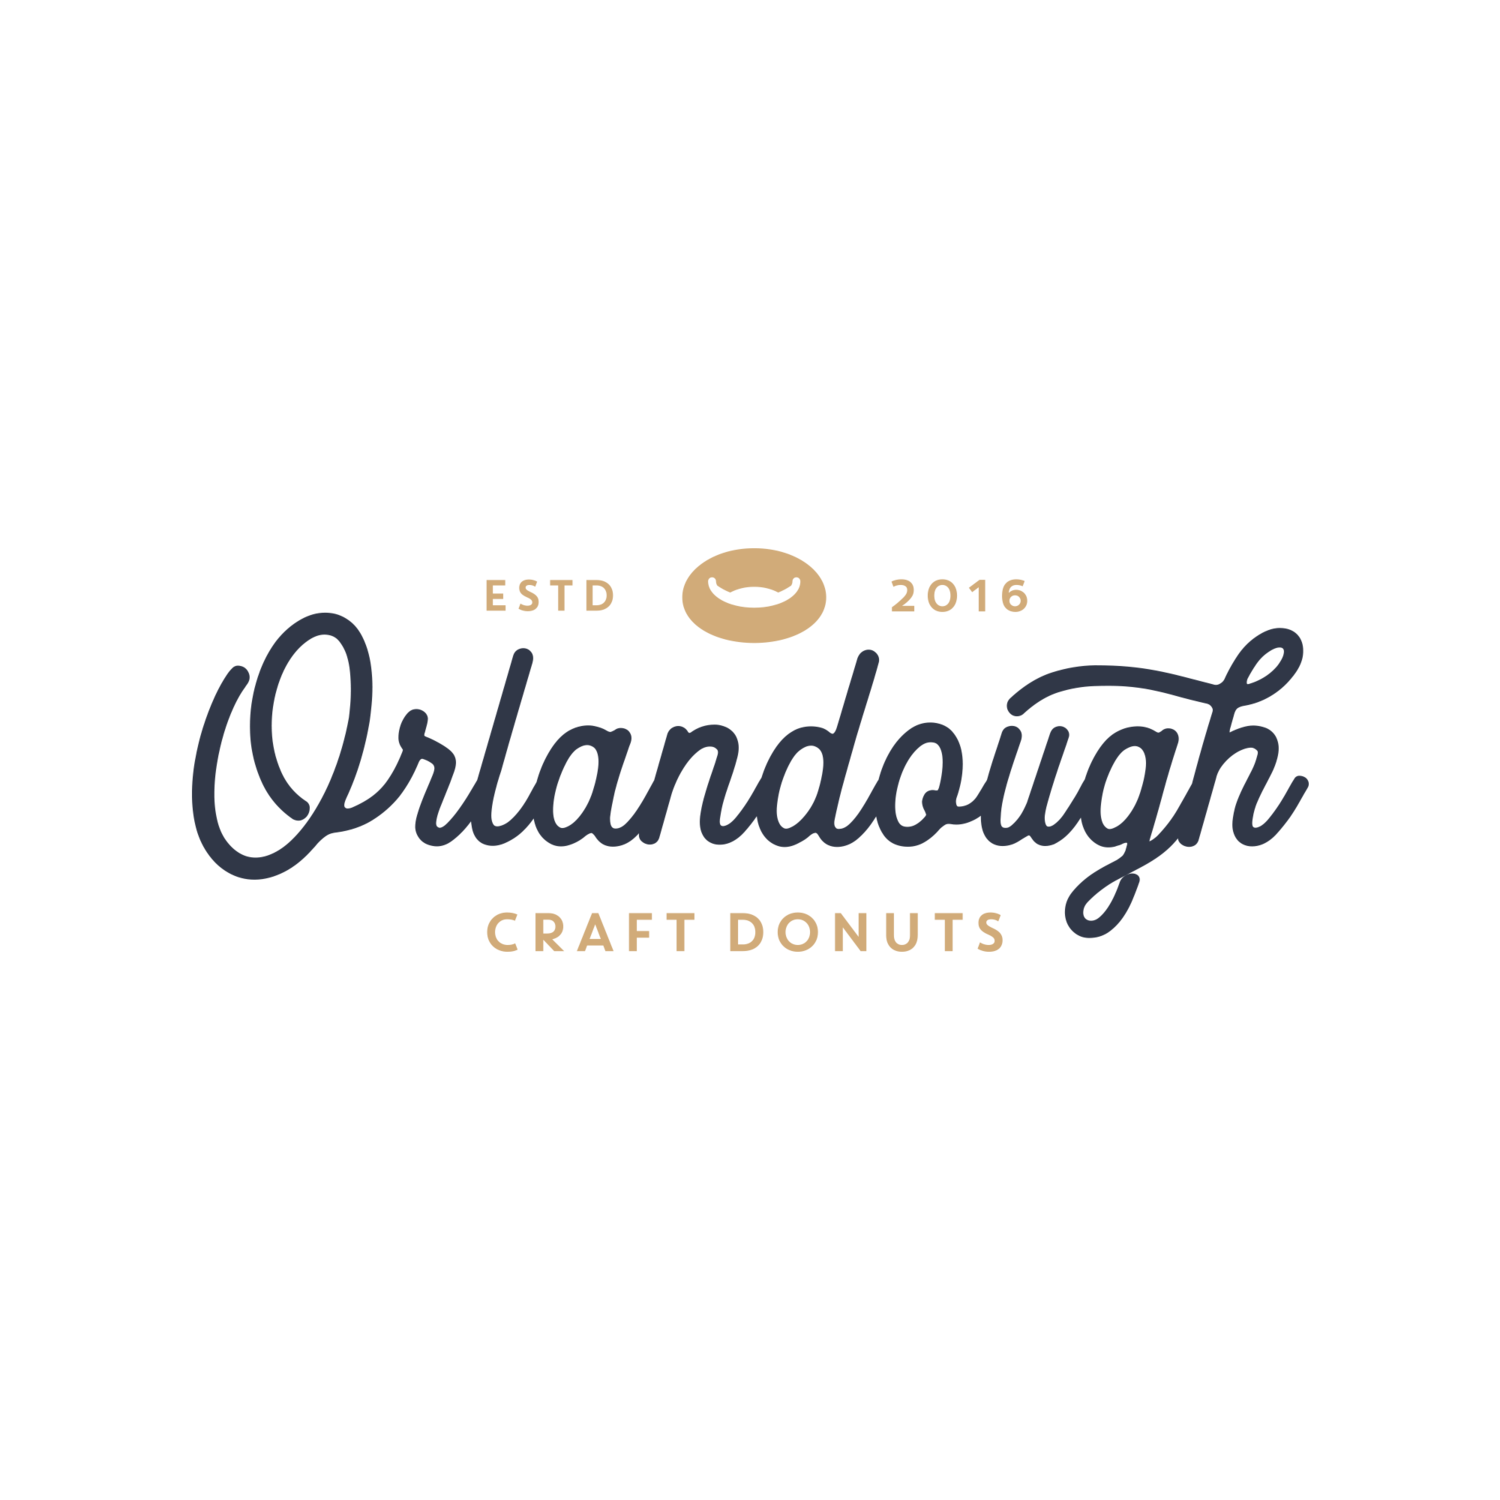 Orlandough- Orlando Craft Donut Bakery